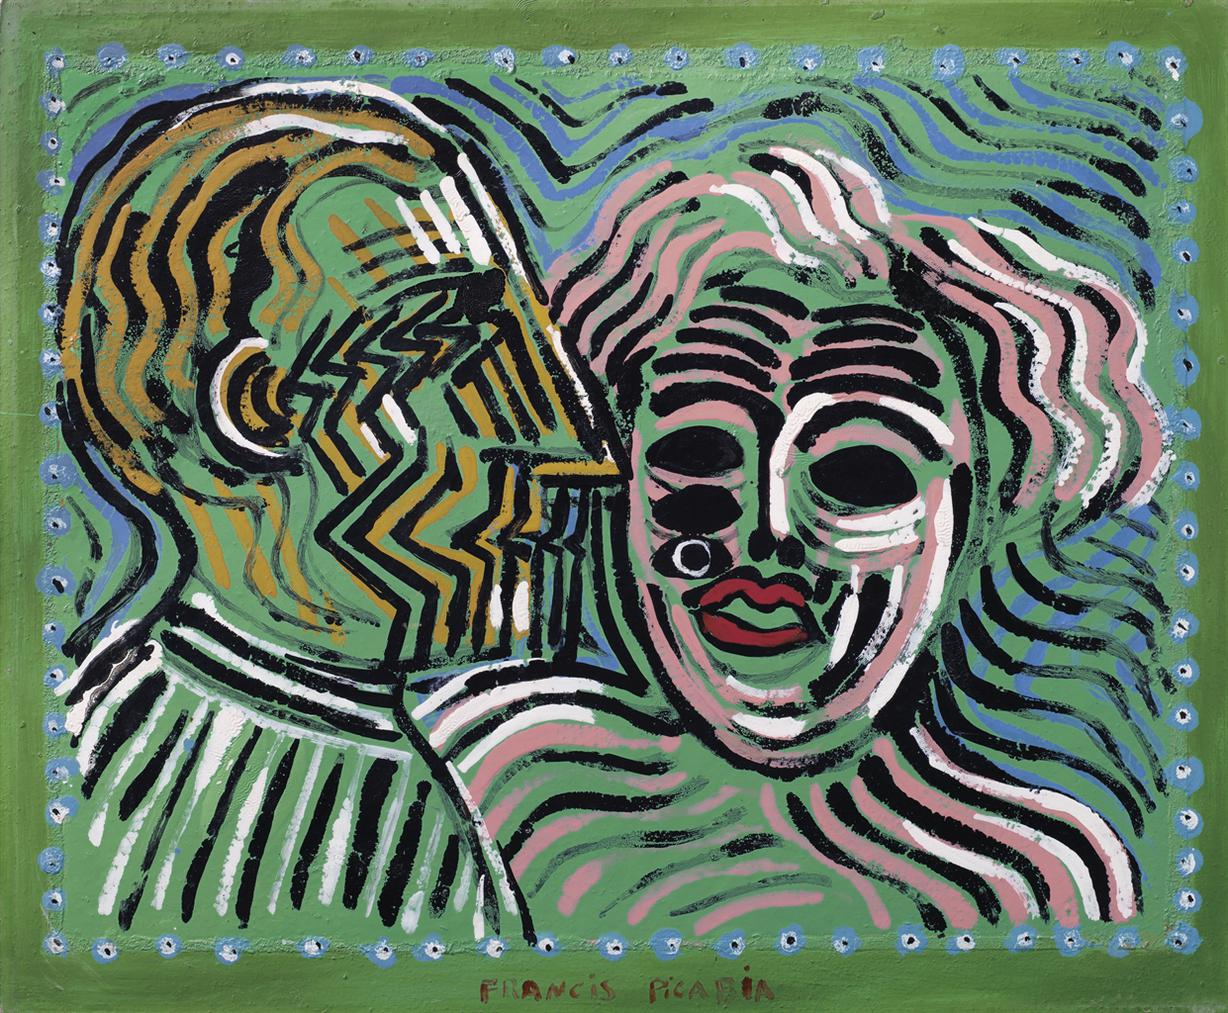 Francis Picabia-Couple-1927